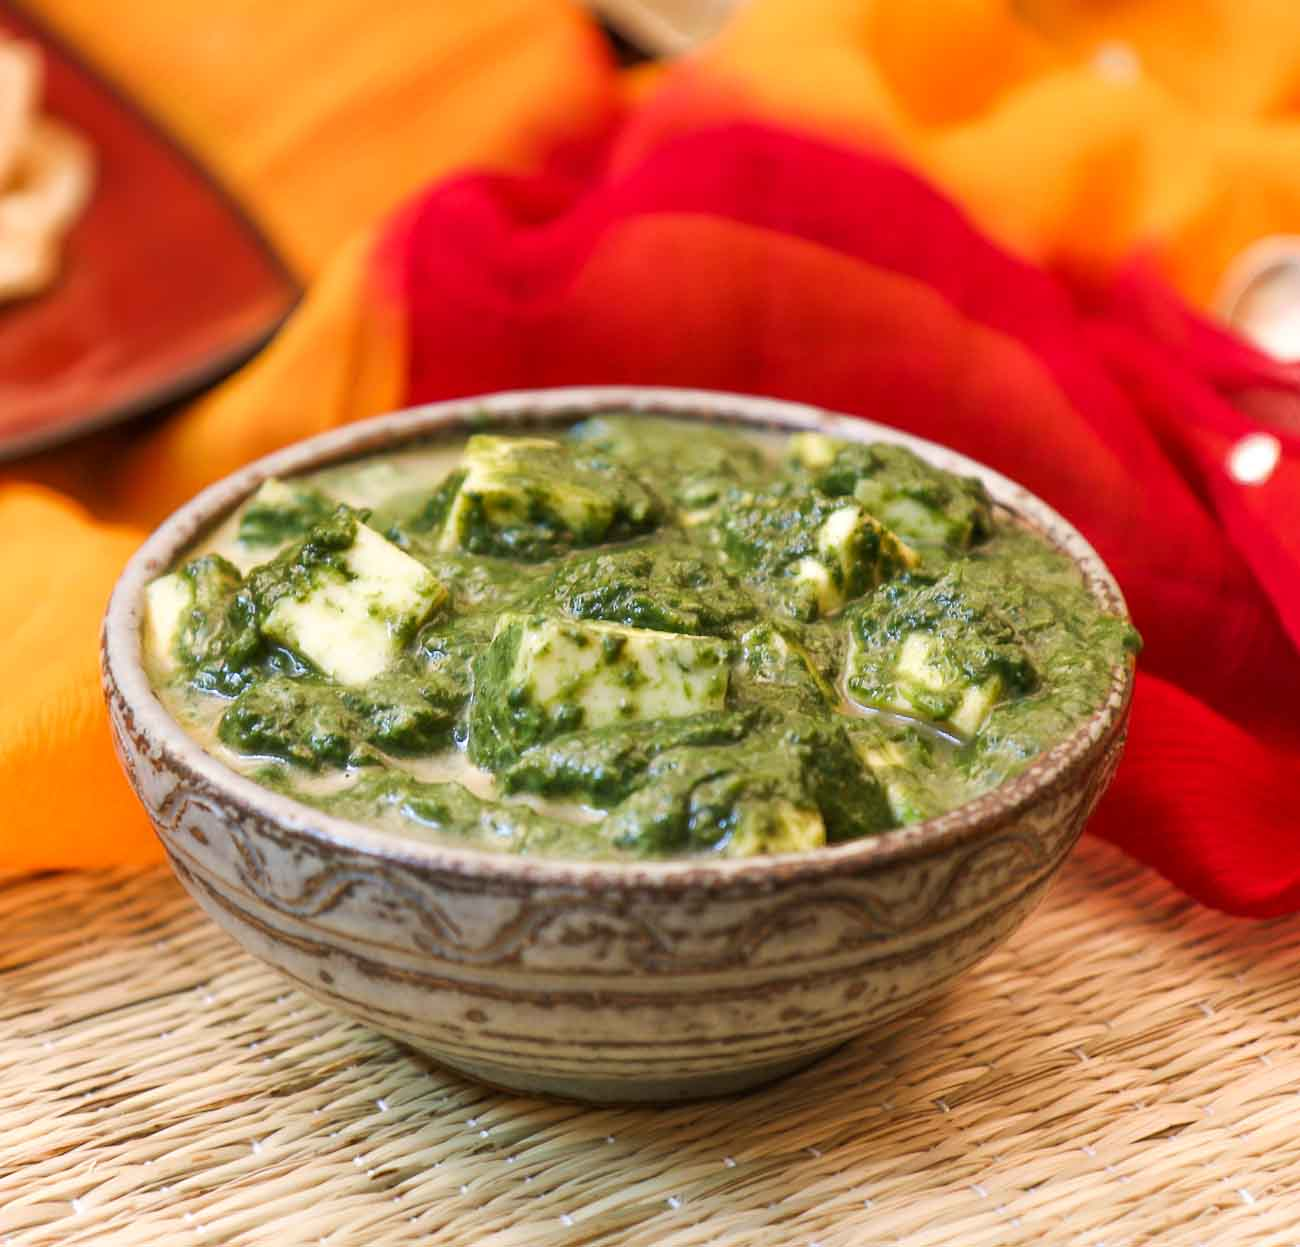 Palak paneer recipe cottage cheese in spinach gravy by archanas palak paneer recipe cottage cheese in spinach gravy forumfinder Images